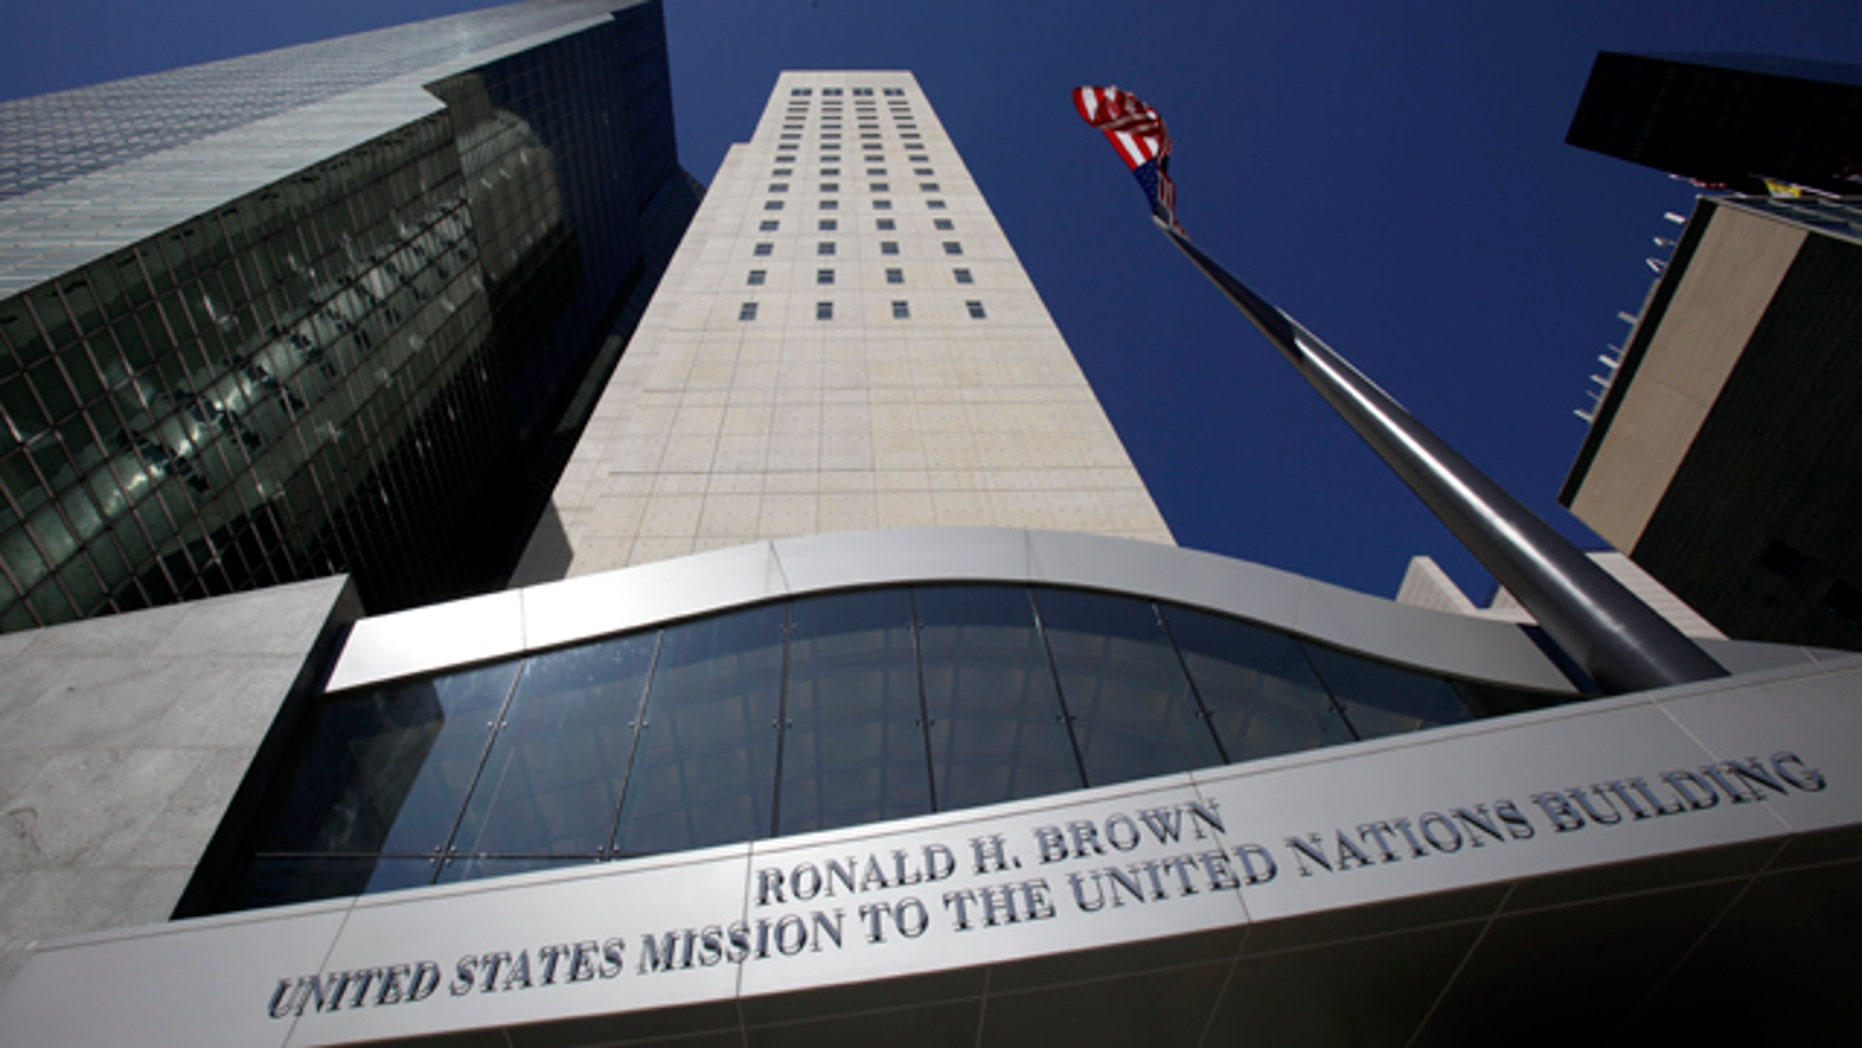 The new Ronald H. Brown United States Mission to the United Nations is seen in New York, Sunday, March 27, 2011.